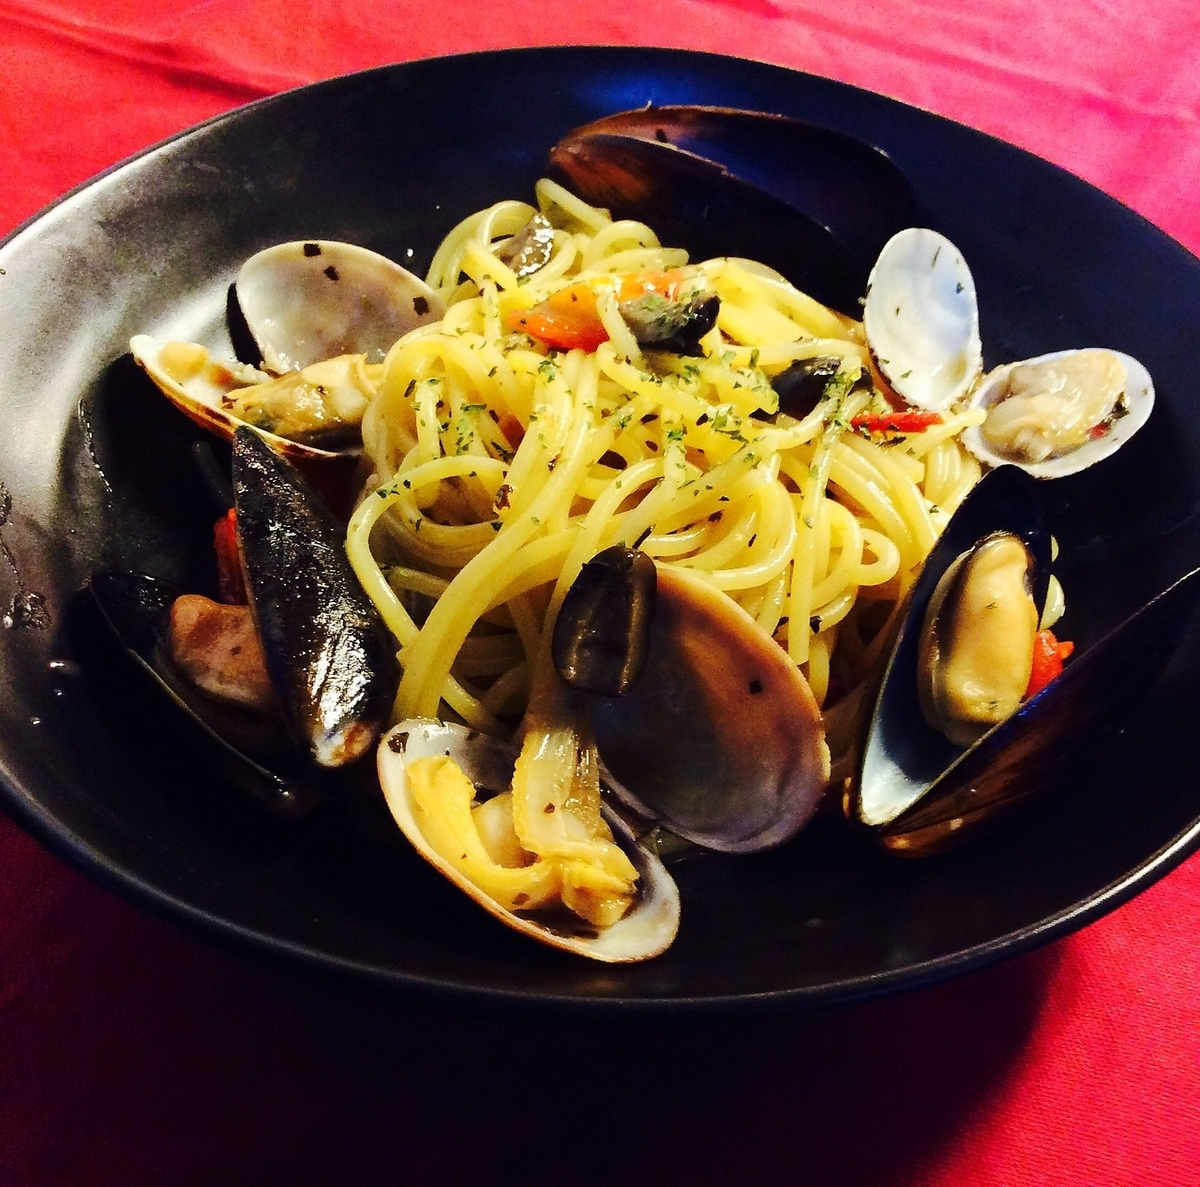 Vongole of mussels and clams